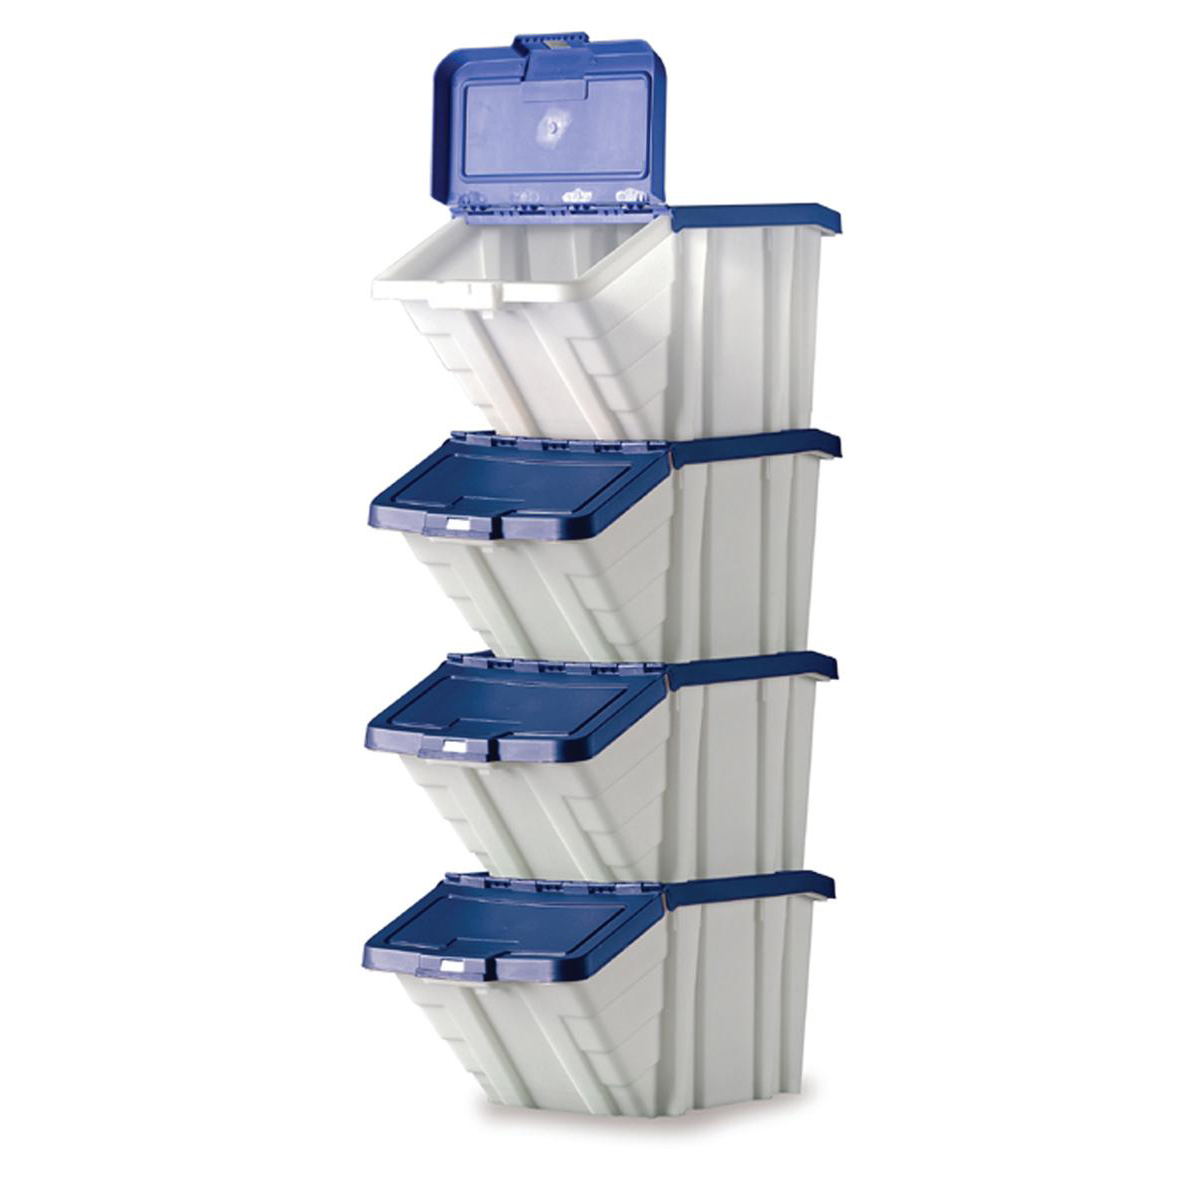 Containers Storage Container Bin 50L 30kg Load W390xD630xH340mm White and Blue Lid Pack 4